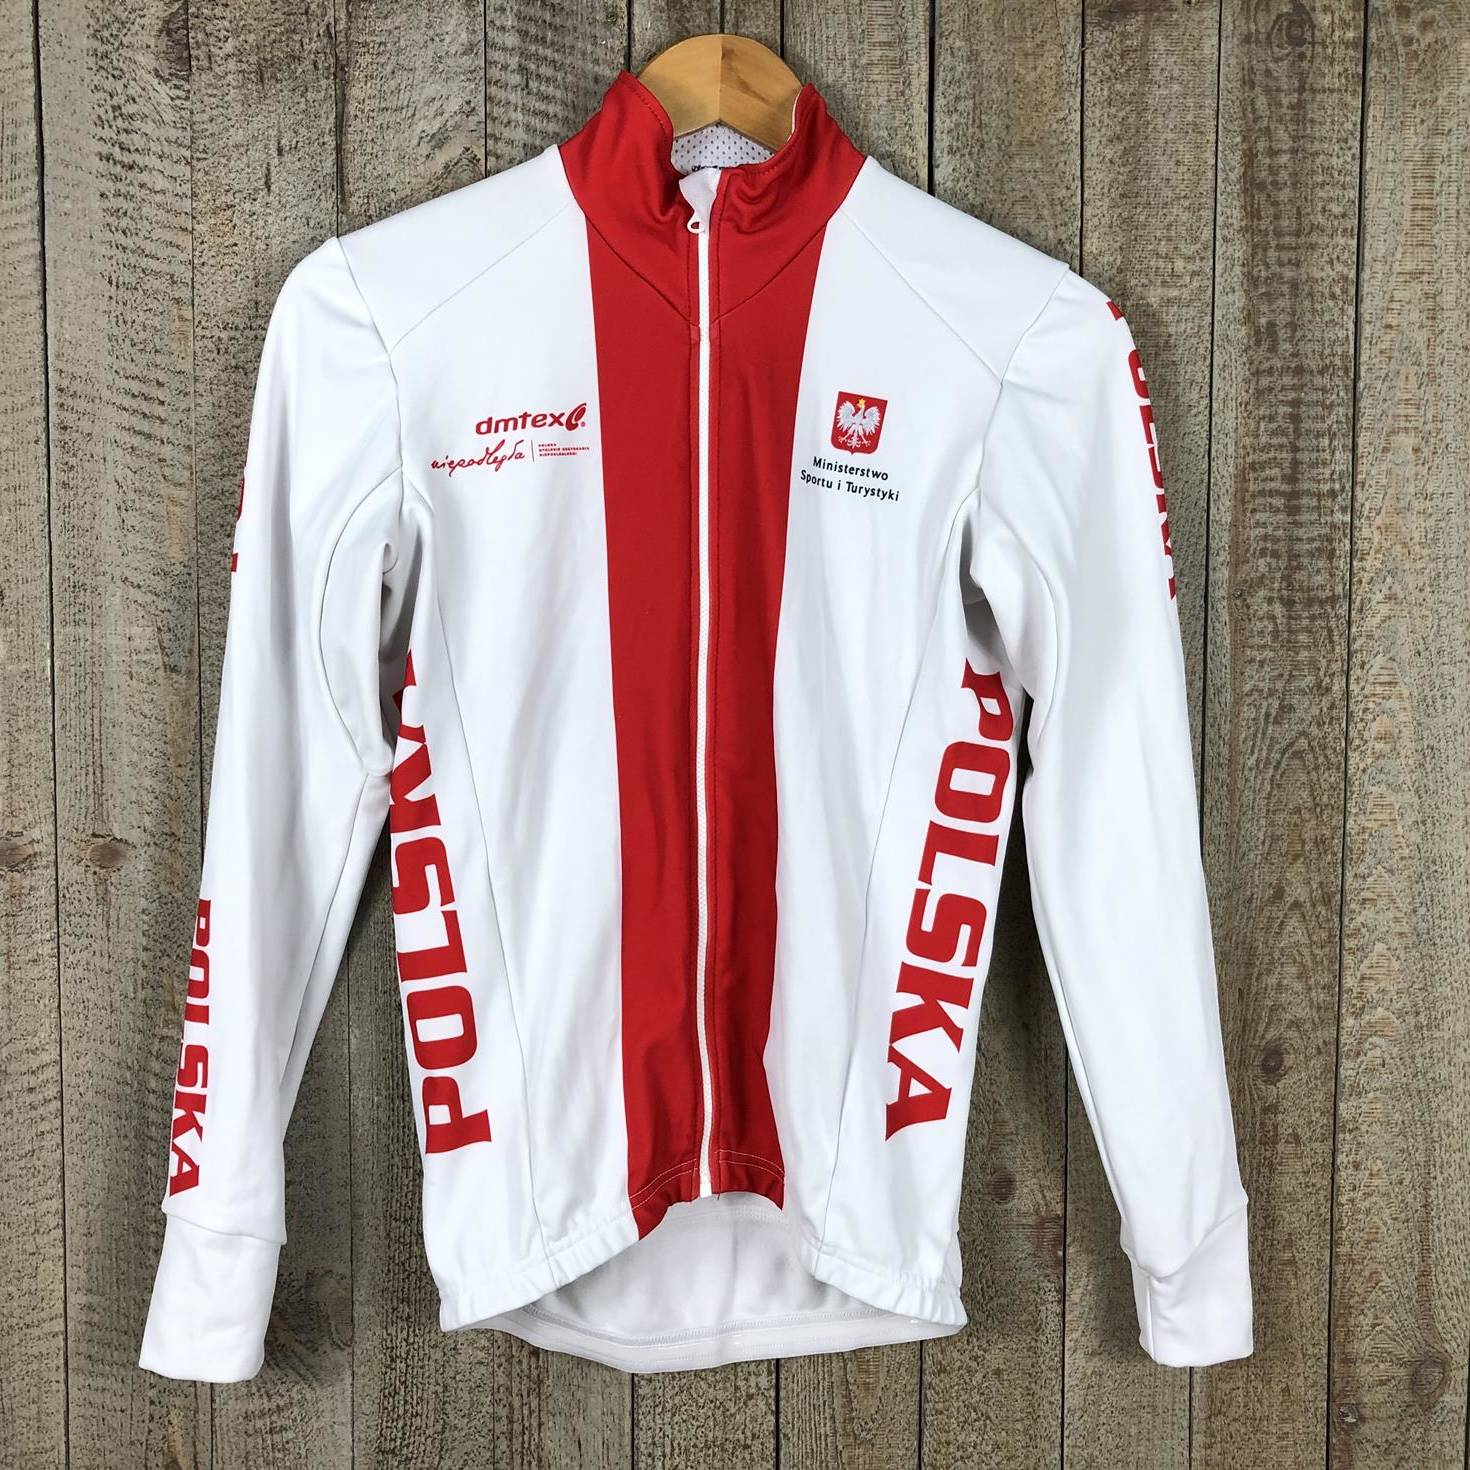 Thermal Long Sleeve Jersey - Polish National Team 00003139 (1)